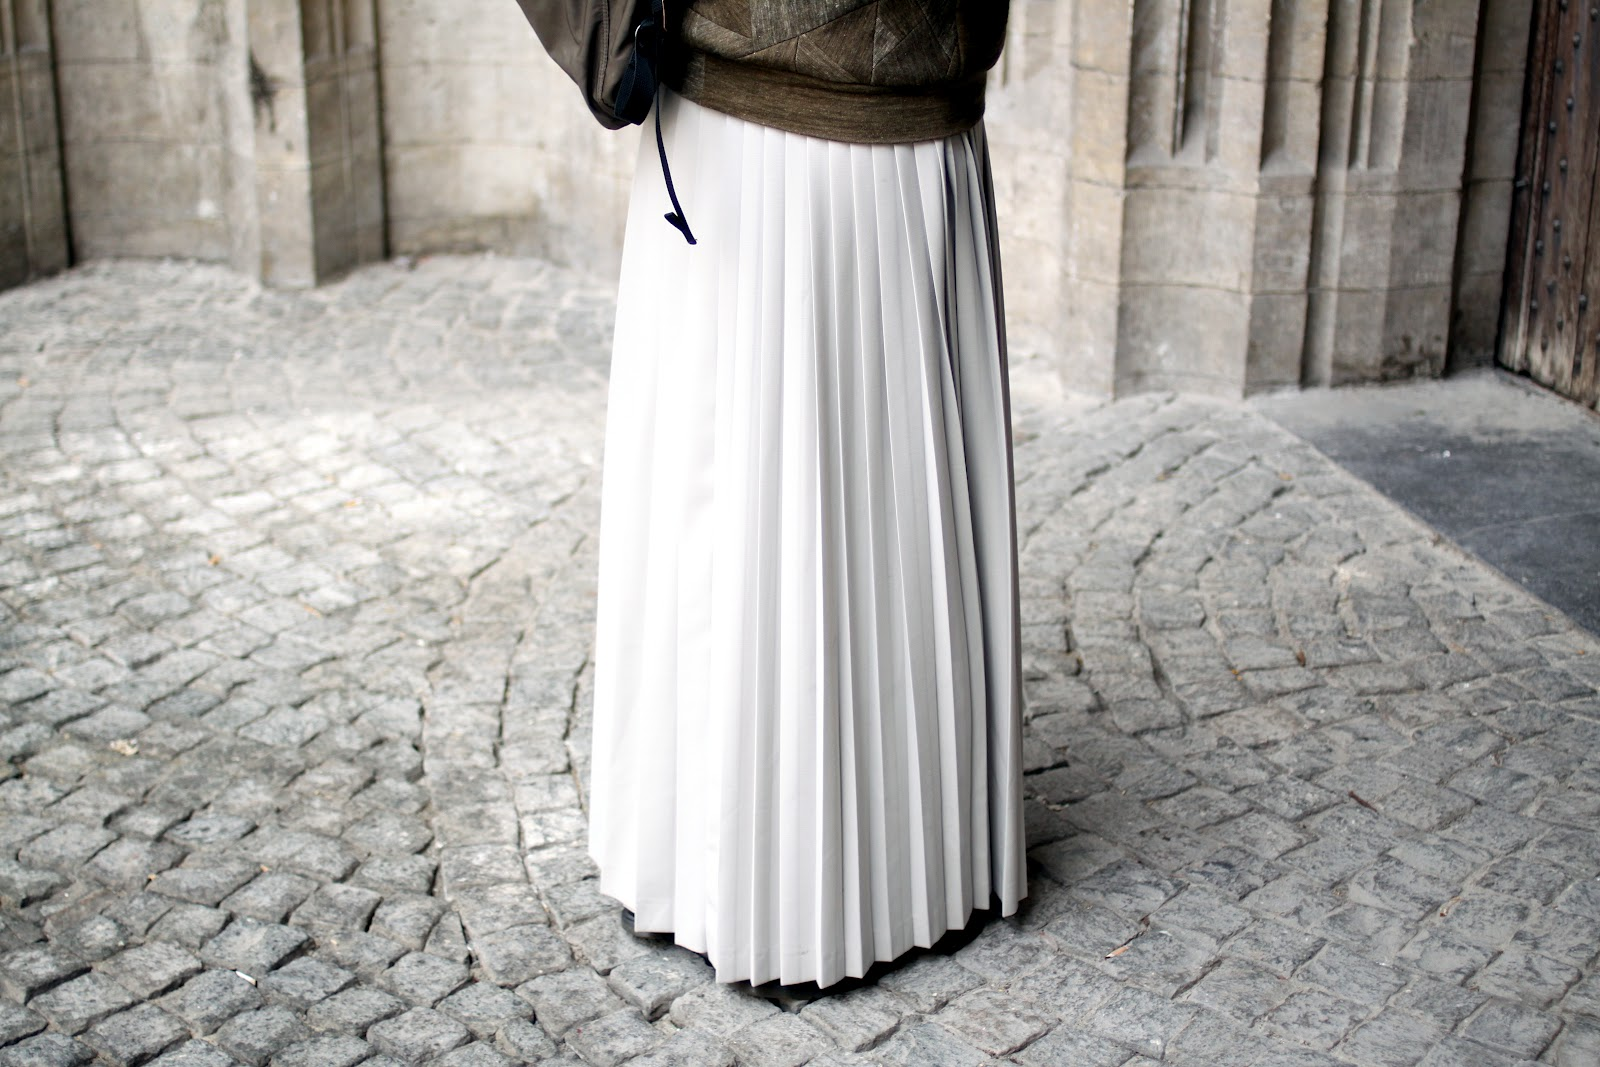 AF Vandevorst skirt on cobbles